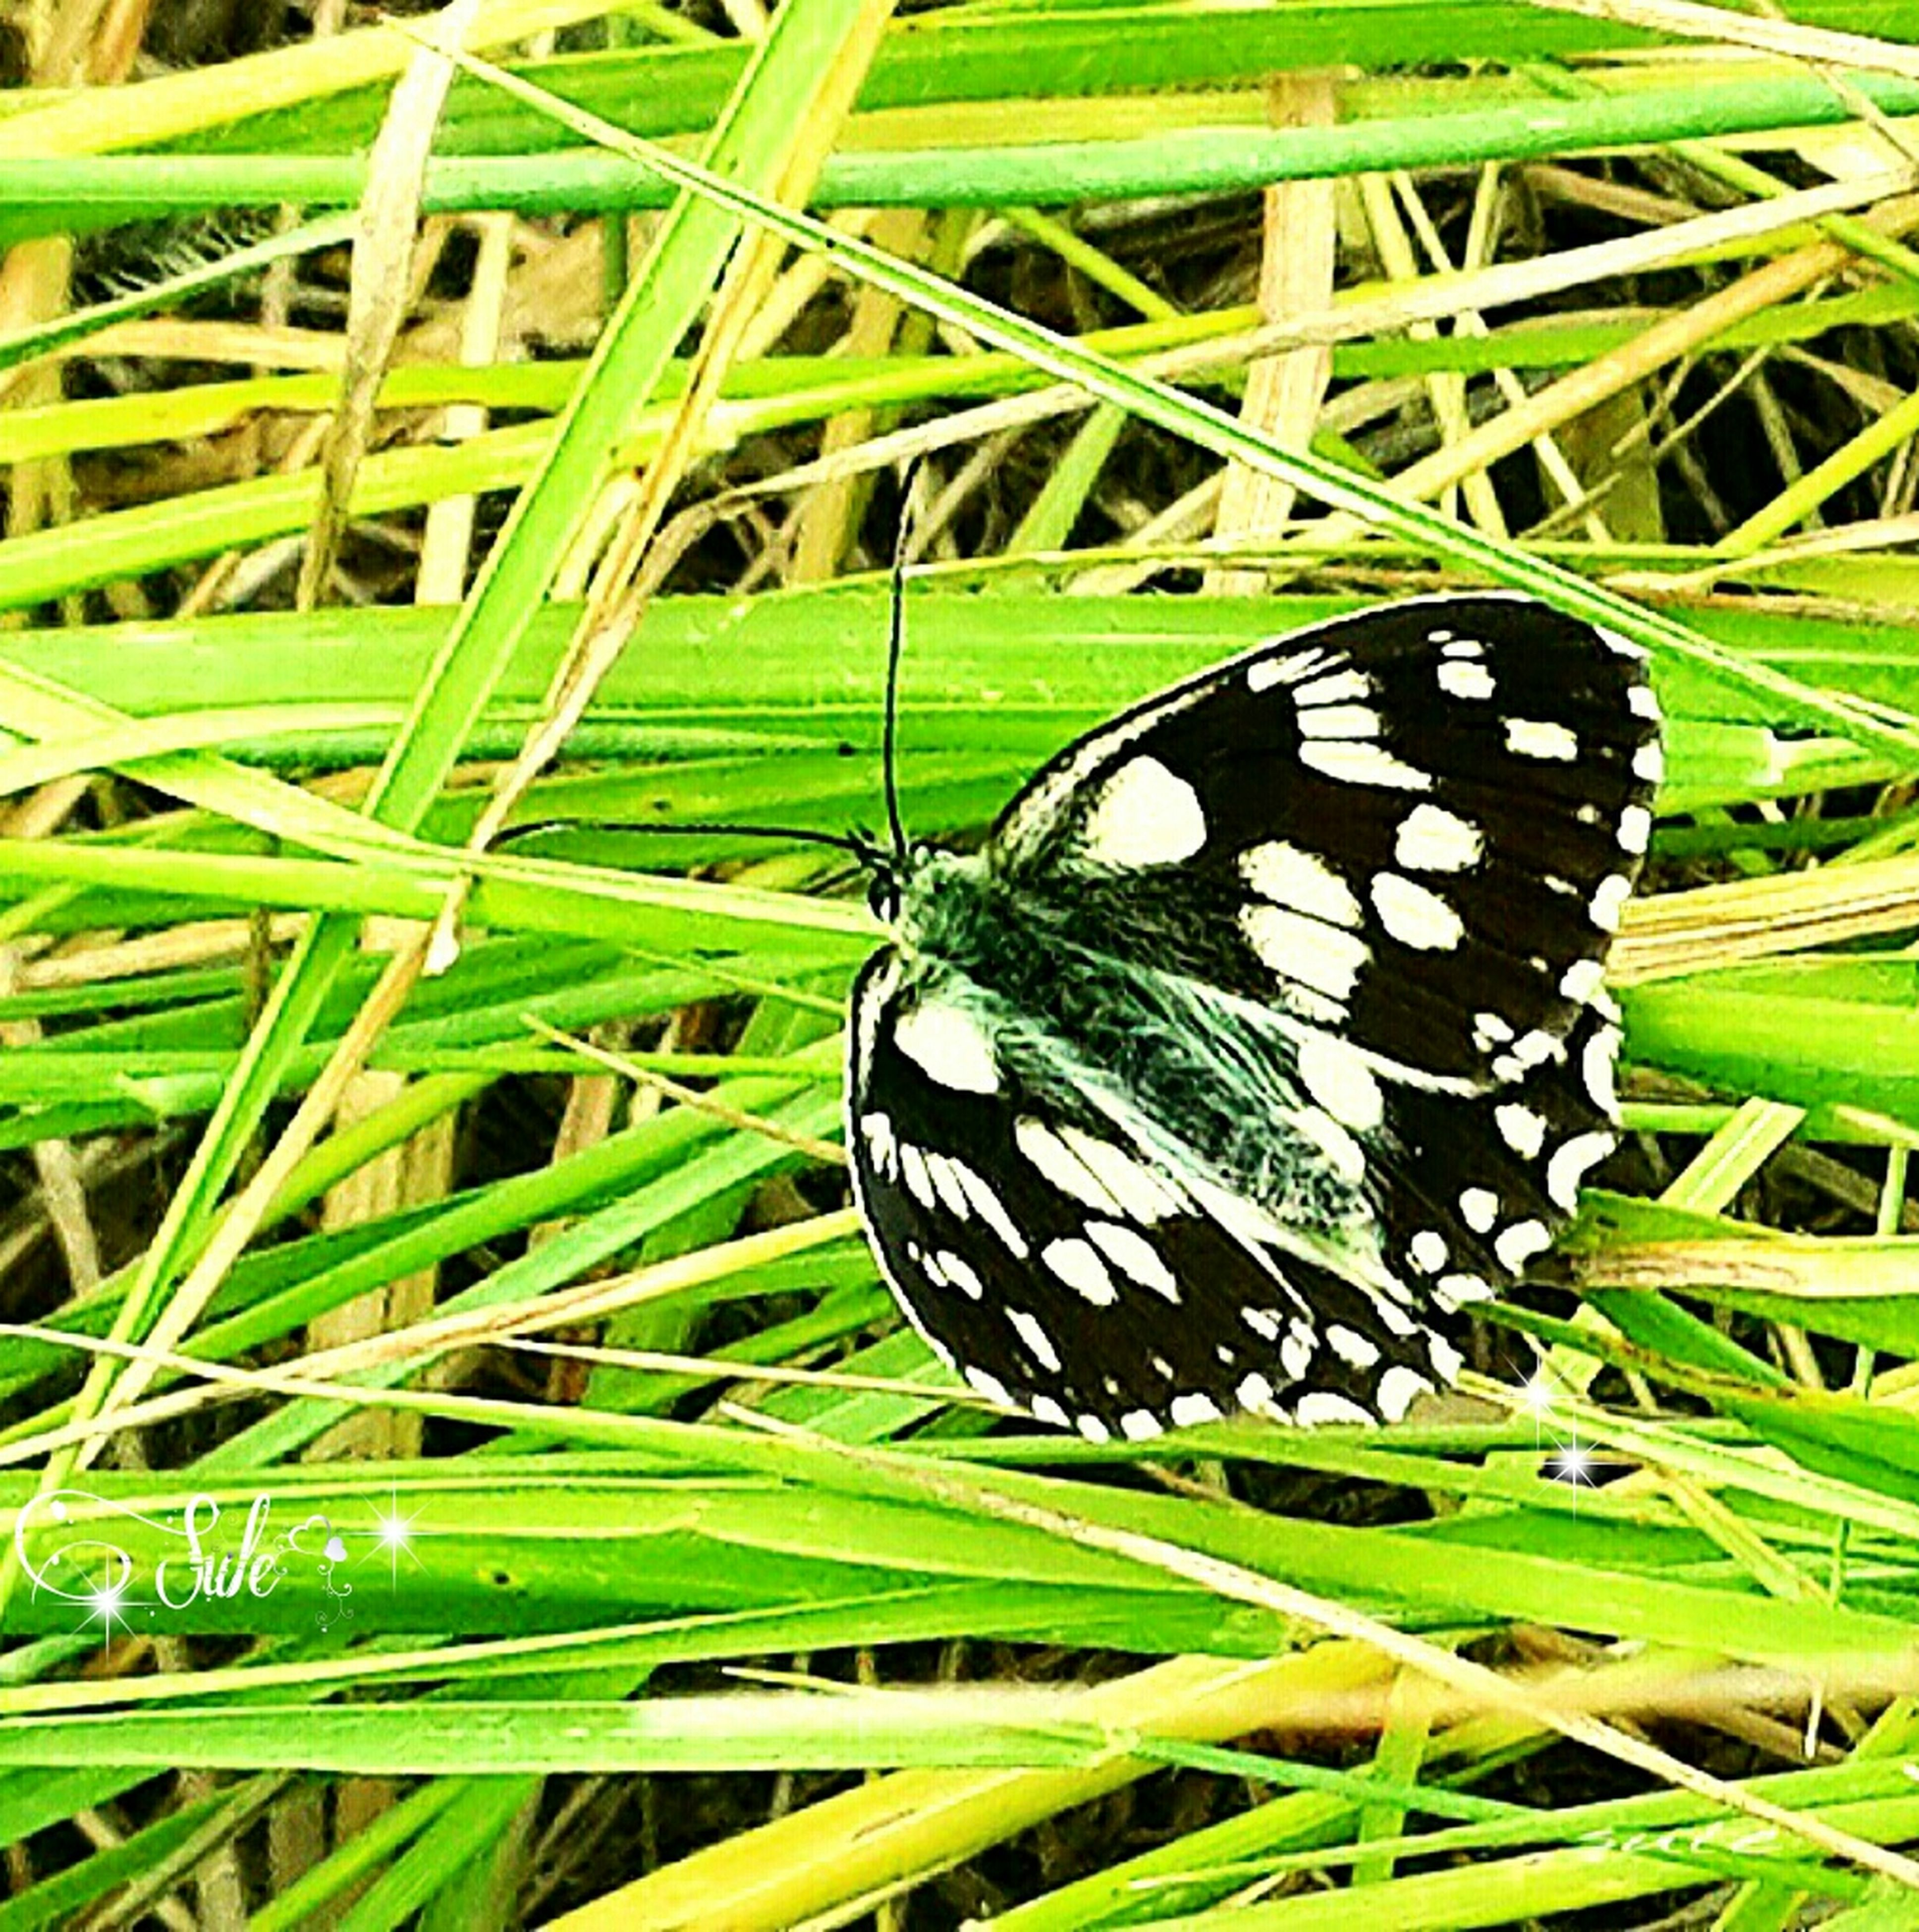 butterfly - insect, insect, butterfly, animals in the wild, one animal, green color, grass, leaf, plant, animal themes, close-up, wildlife, growth, animal markings, nature, beauty in nature, natural pattern, focus on foreground, field, outdoors